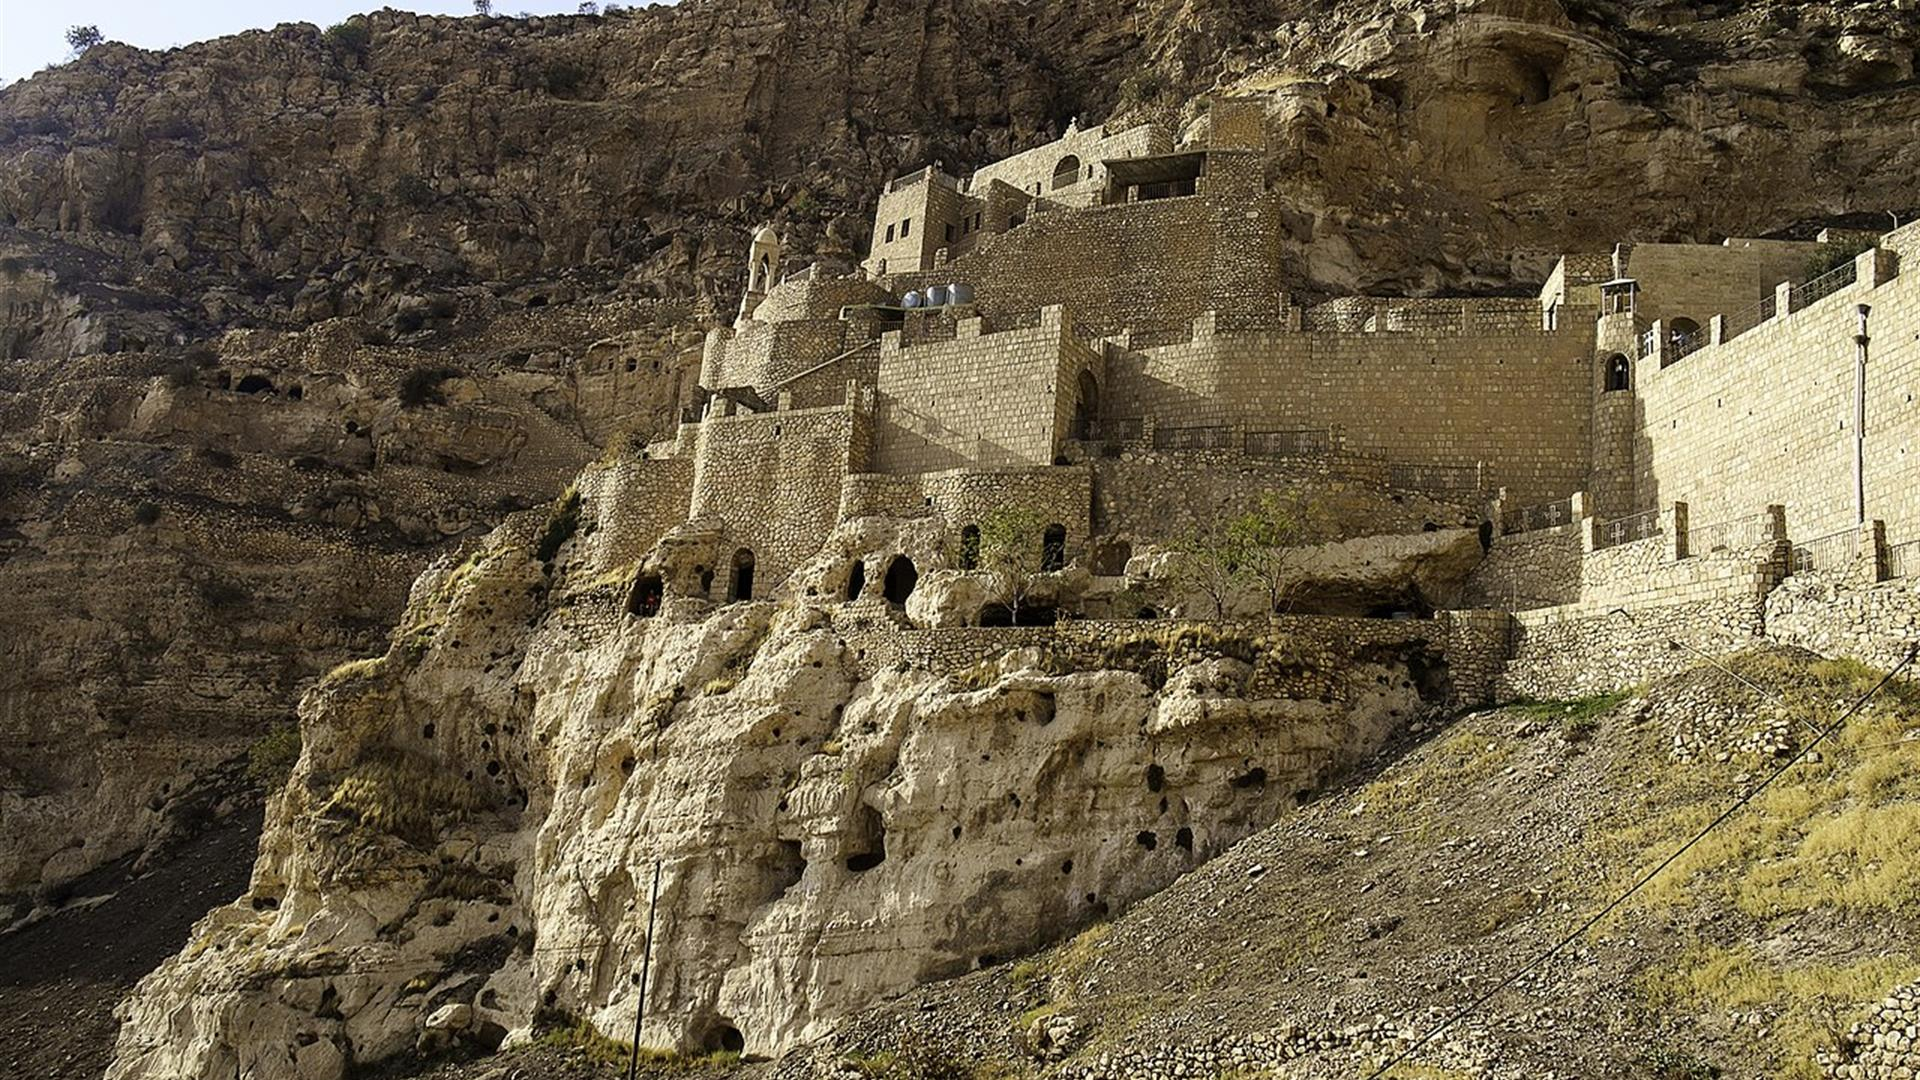 1280Px Rabban Hormizd Monastery View From Below (1)